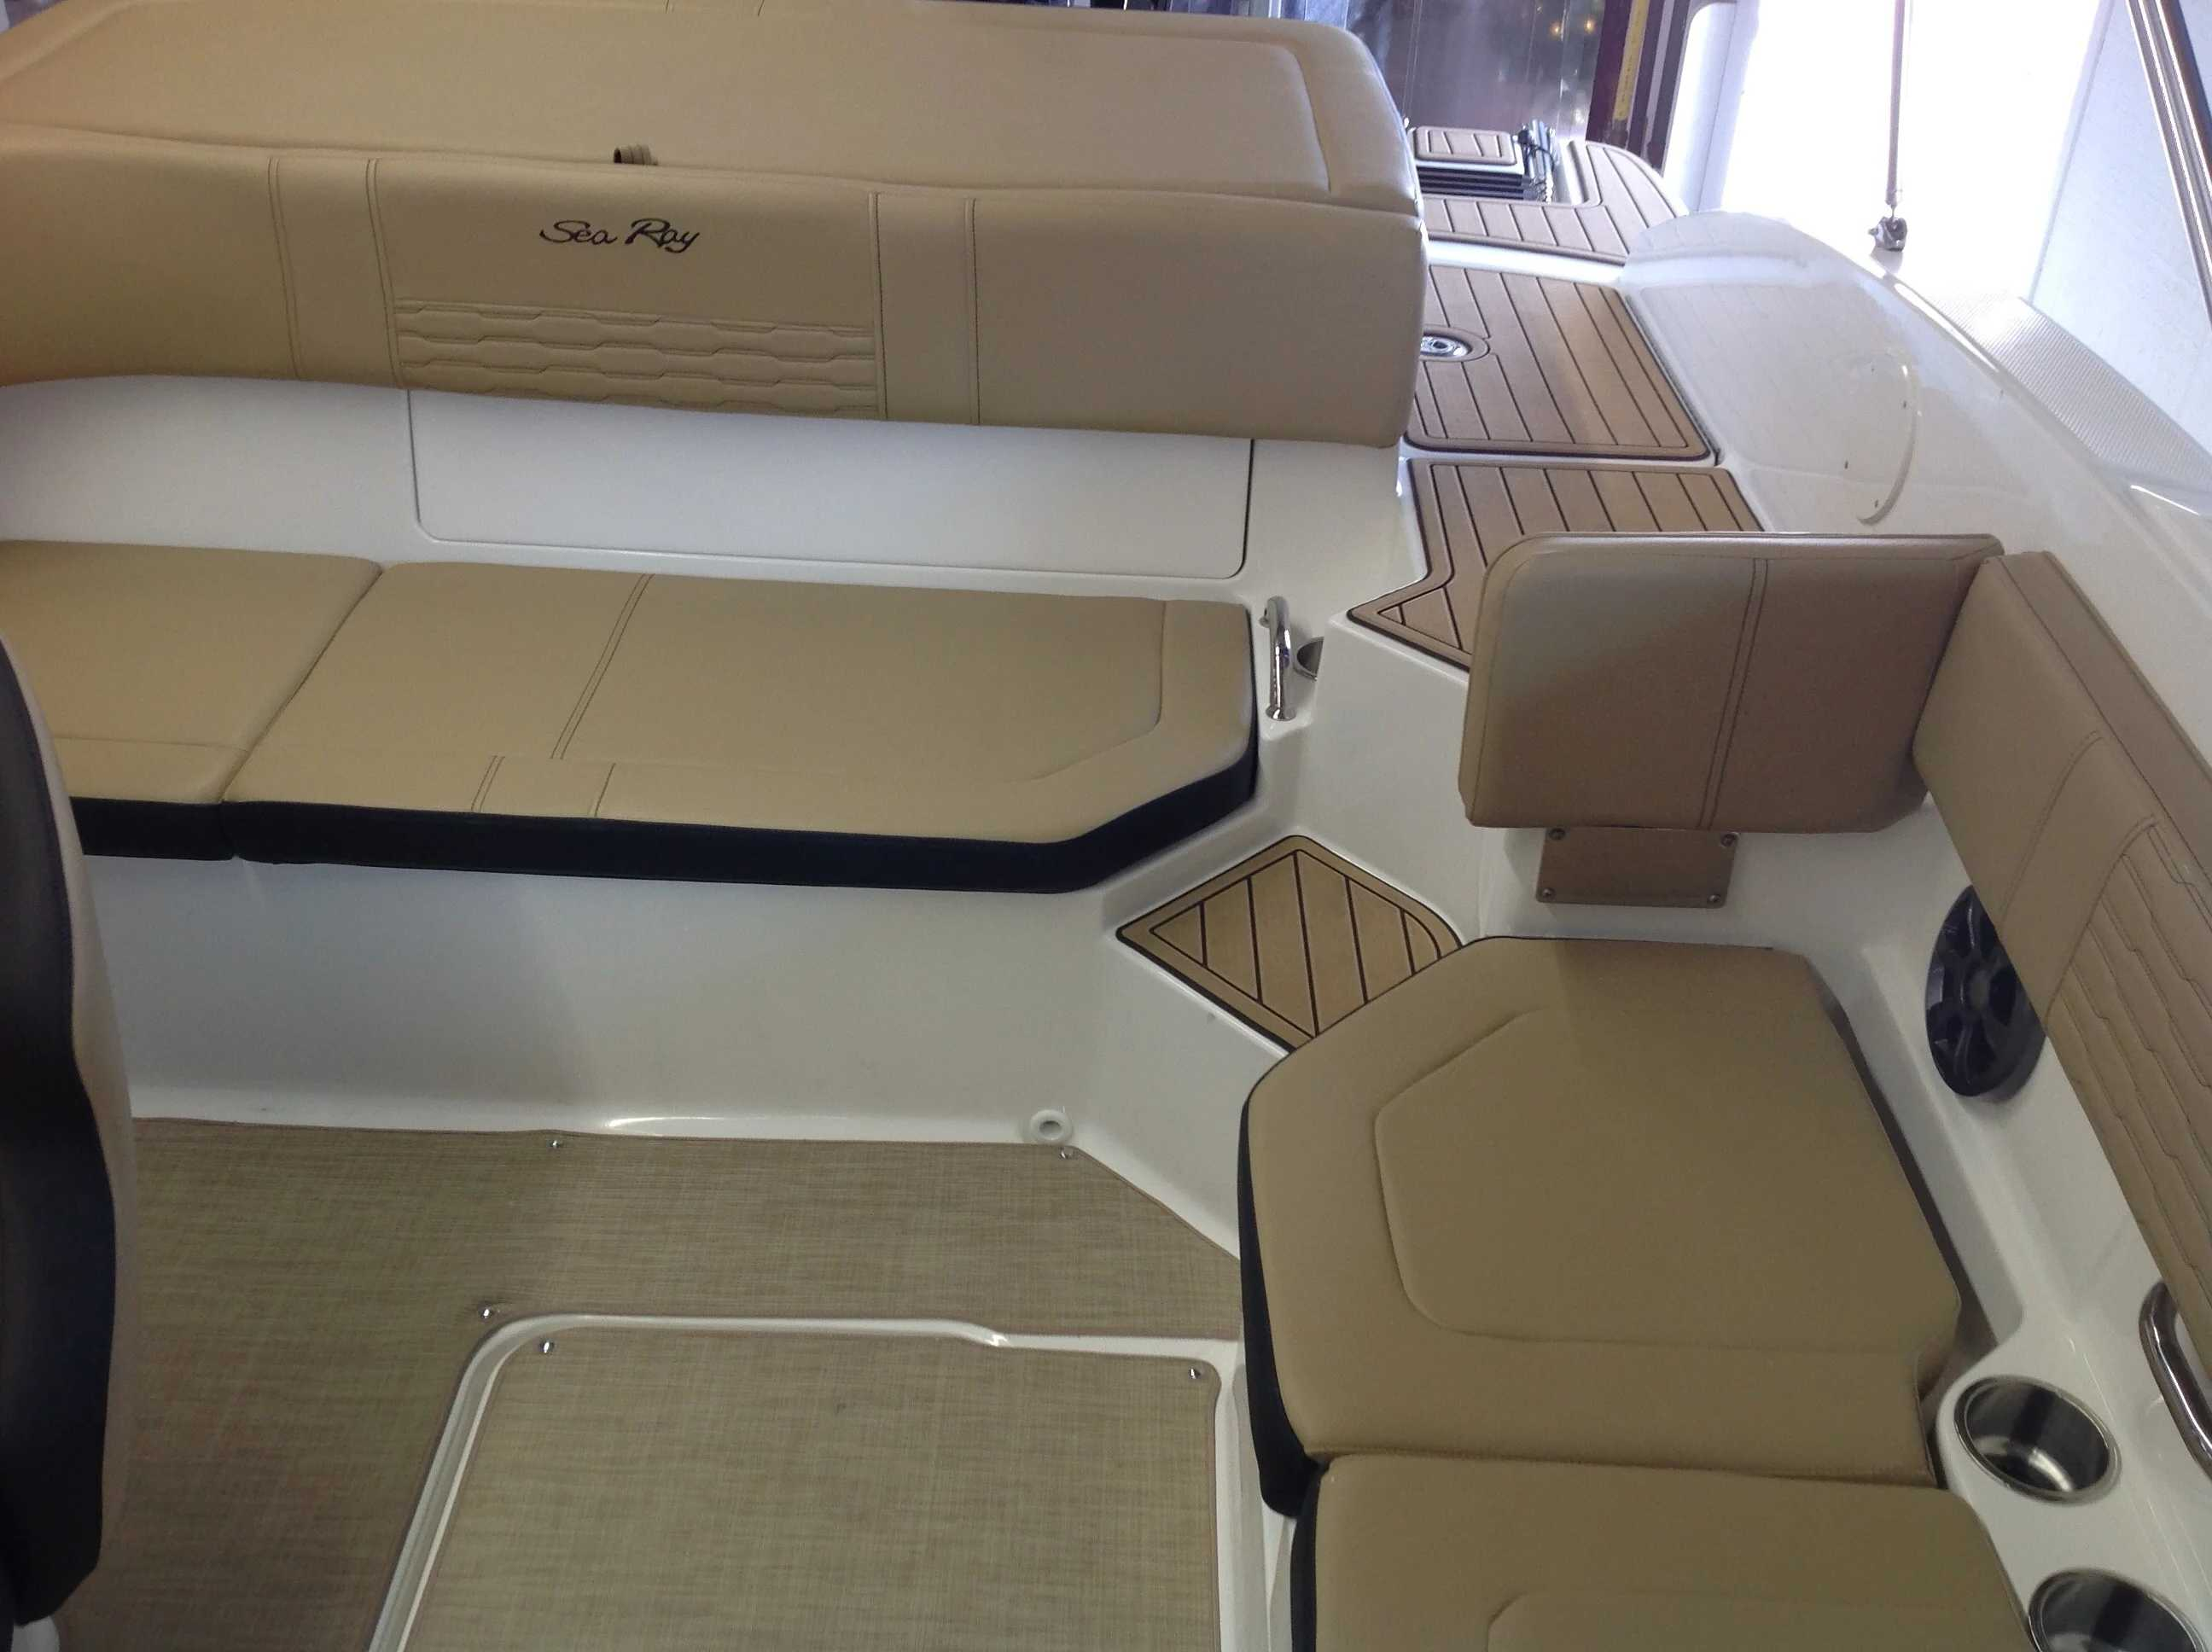 2021 Sea Ray boat for sale, model of the boat is 190 spxo & Image # 11 of 14